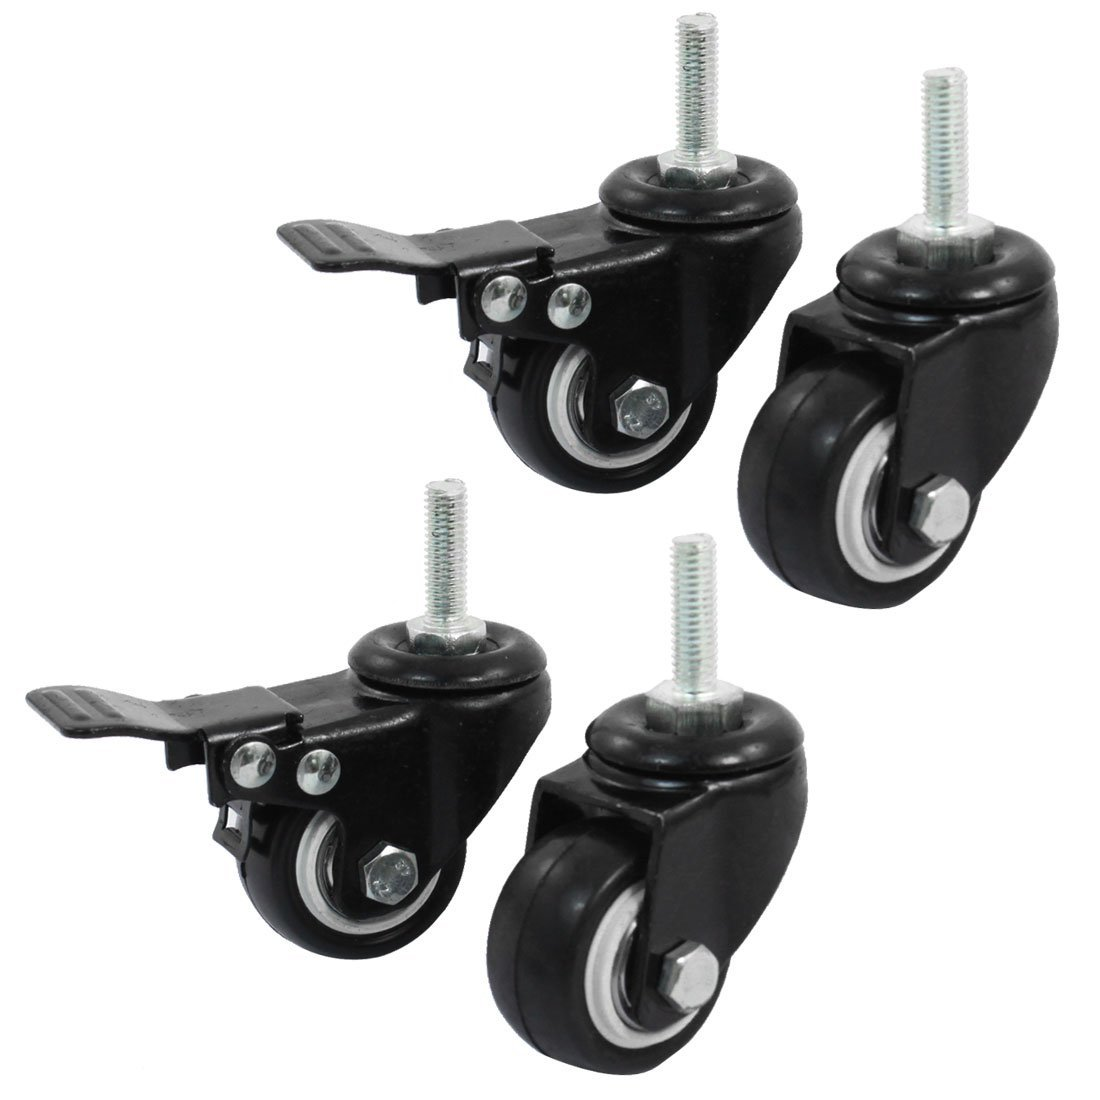 M8 Metal 360 Rotatable 4 Pcs/lot 1.5 Inch Shopping Trolley Brake Swivel Caster Wheel Double Ball Bearings Black Polyurethane|Casters| |  - title=